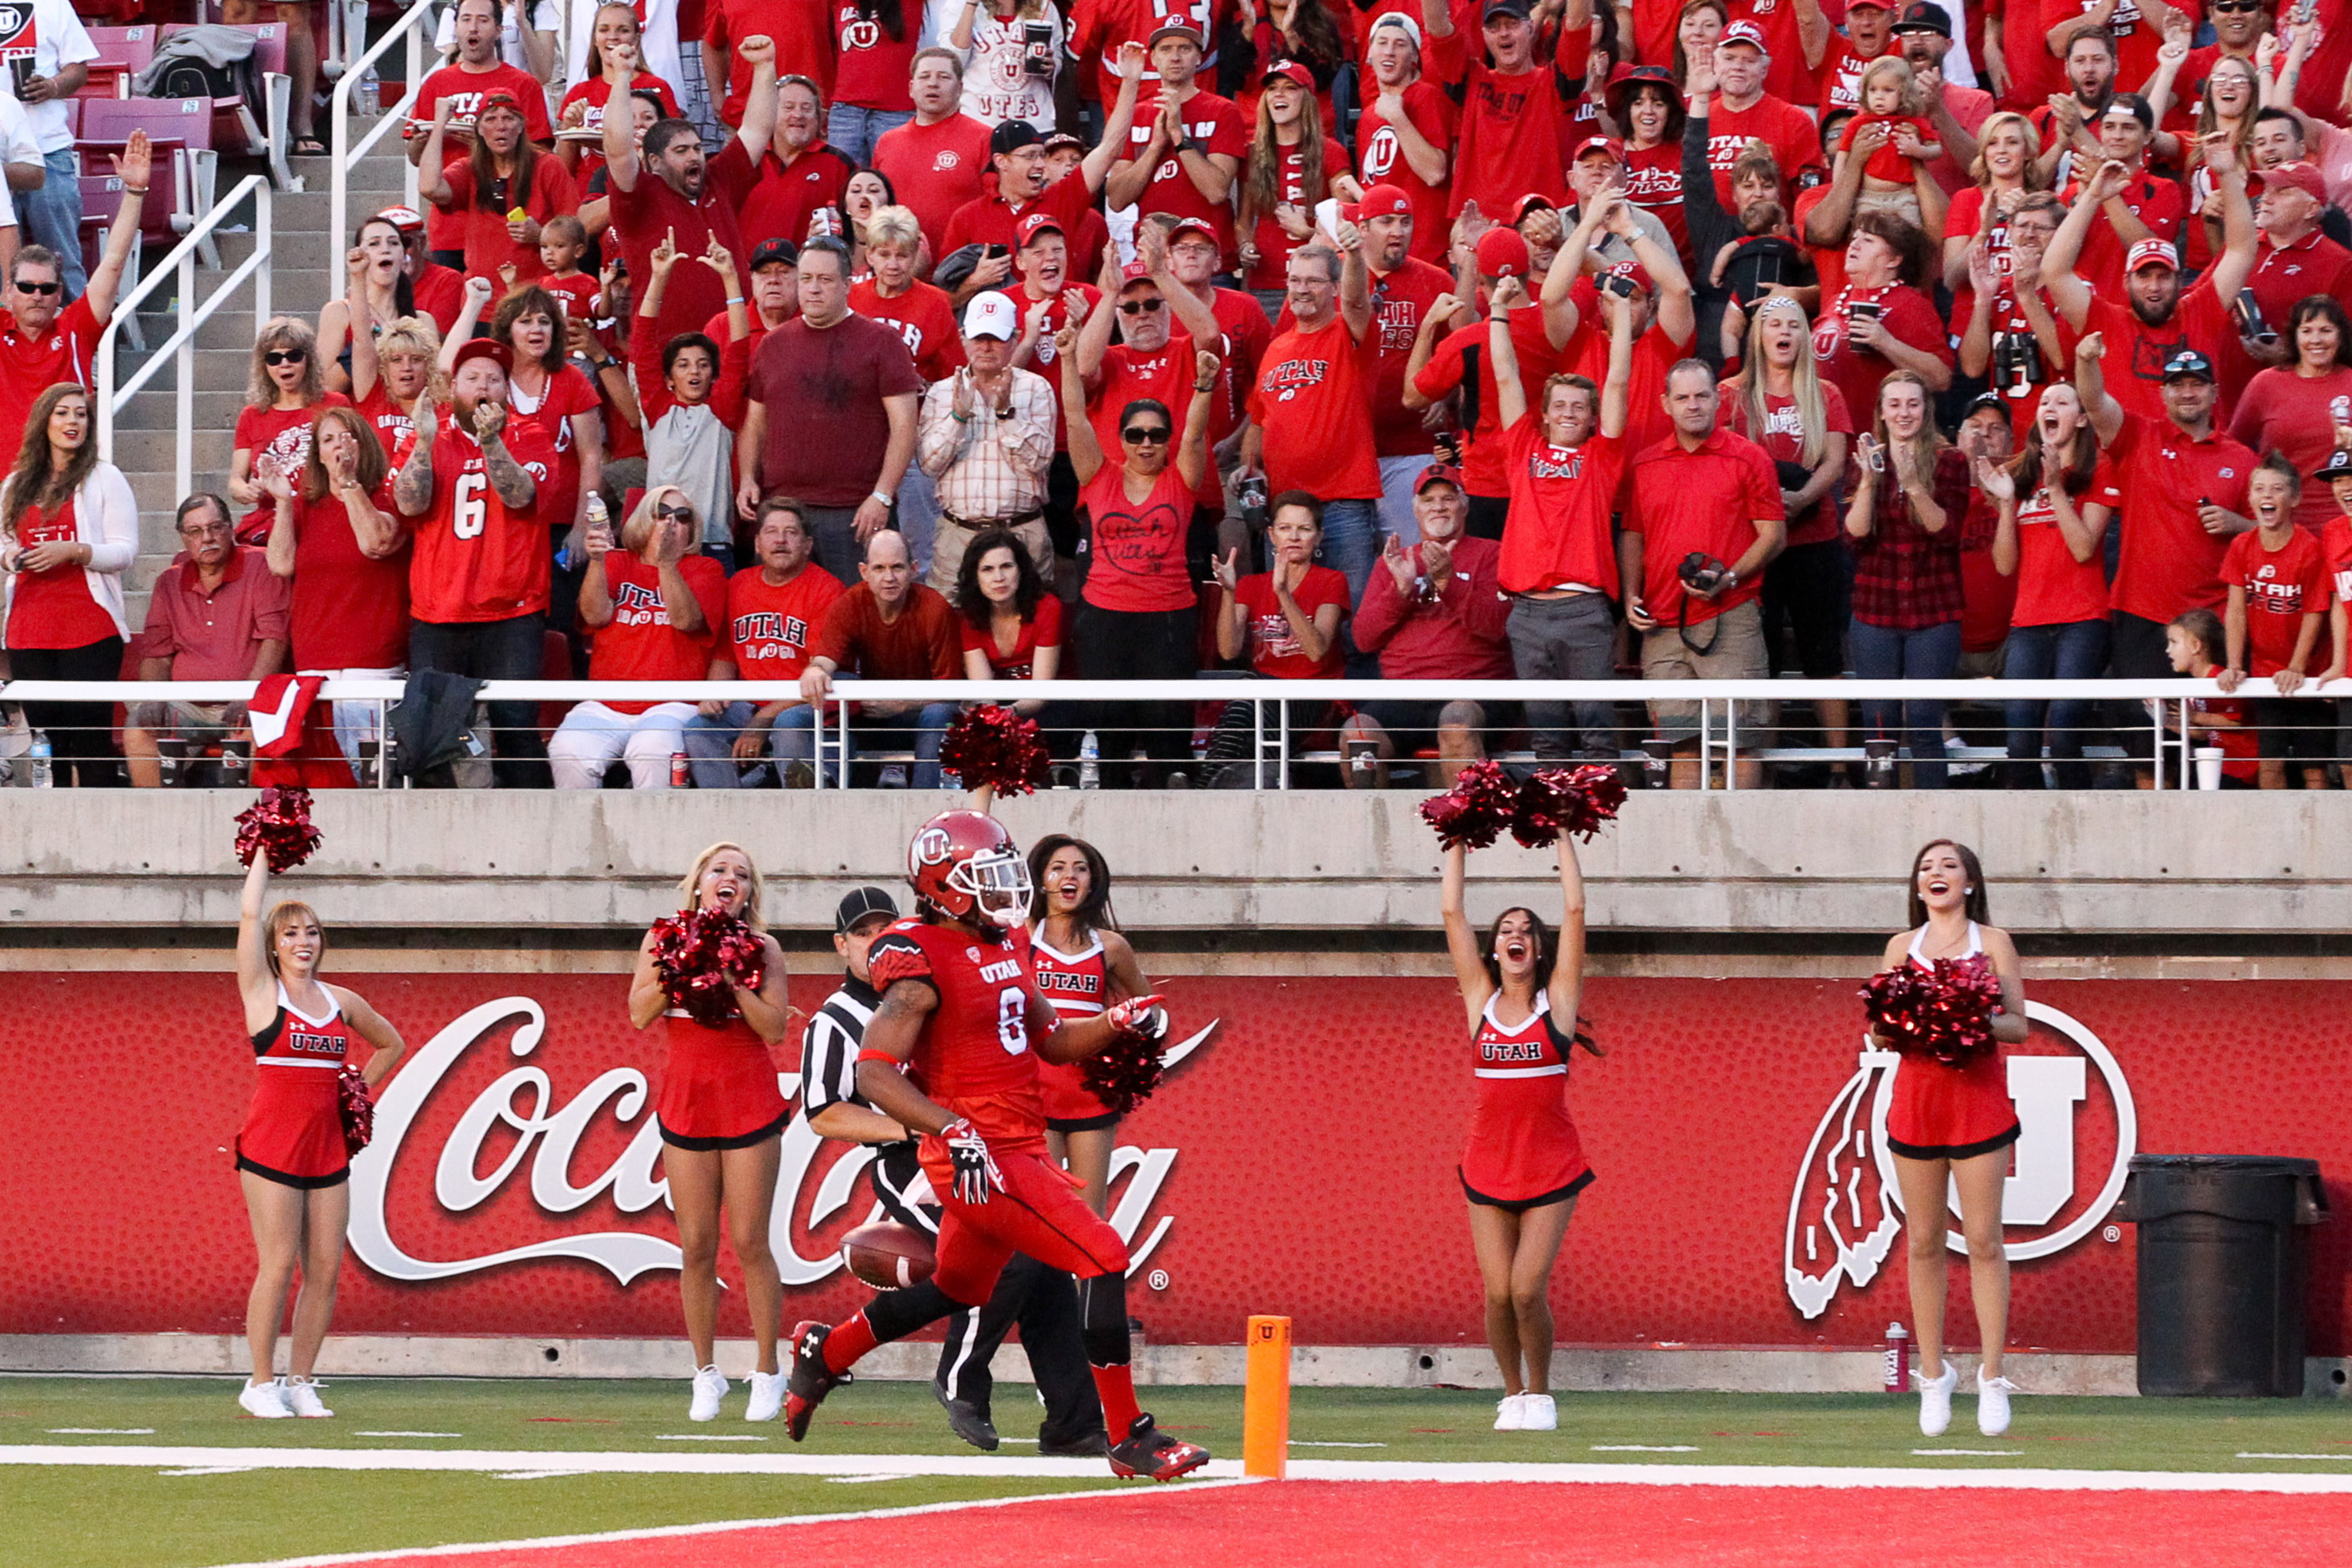 Utah kick returner Kaelin Clay was the story of the game for the Utes, returning a punt and a kickoff for touchdowns.